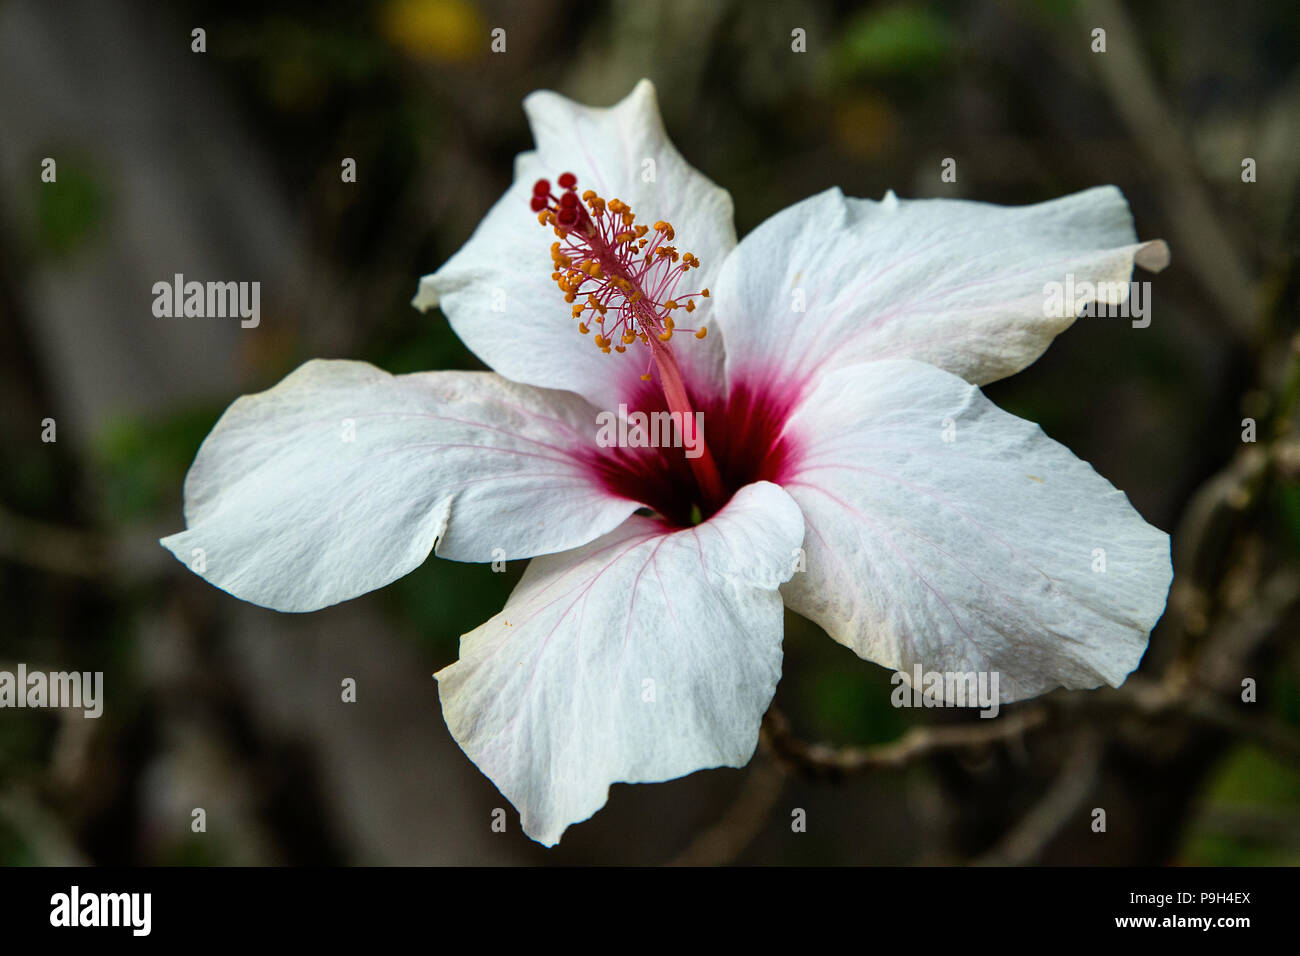 White And Red Hibiscus Flower Stock Photo Alamy